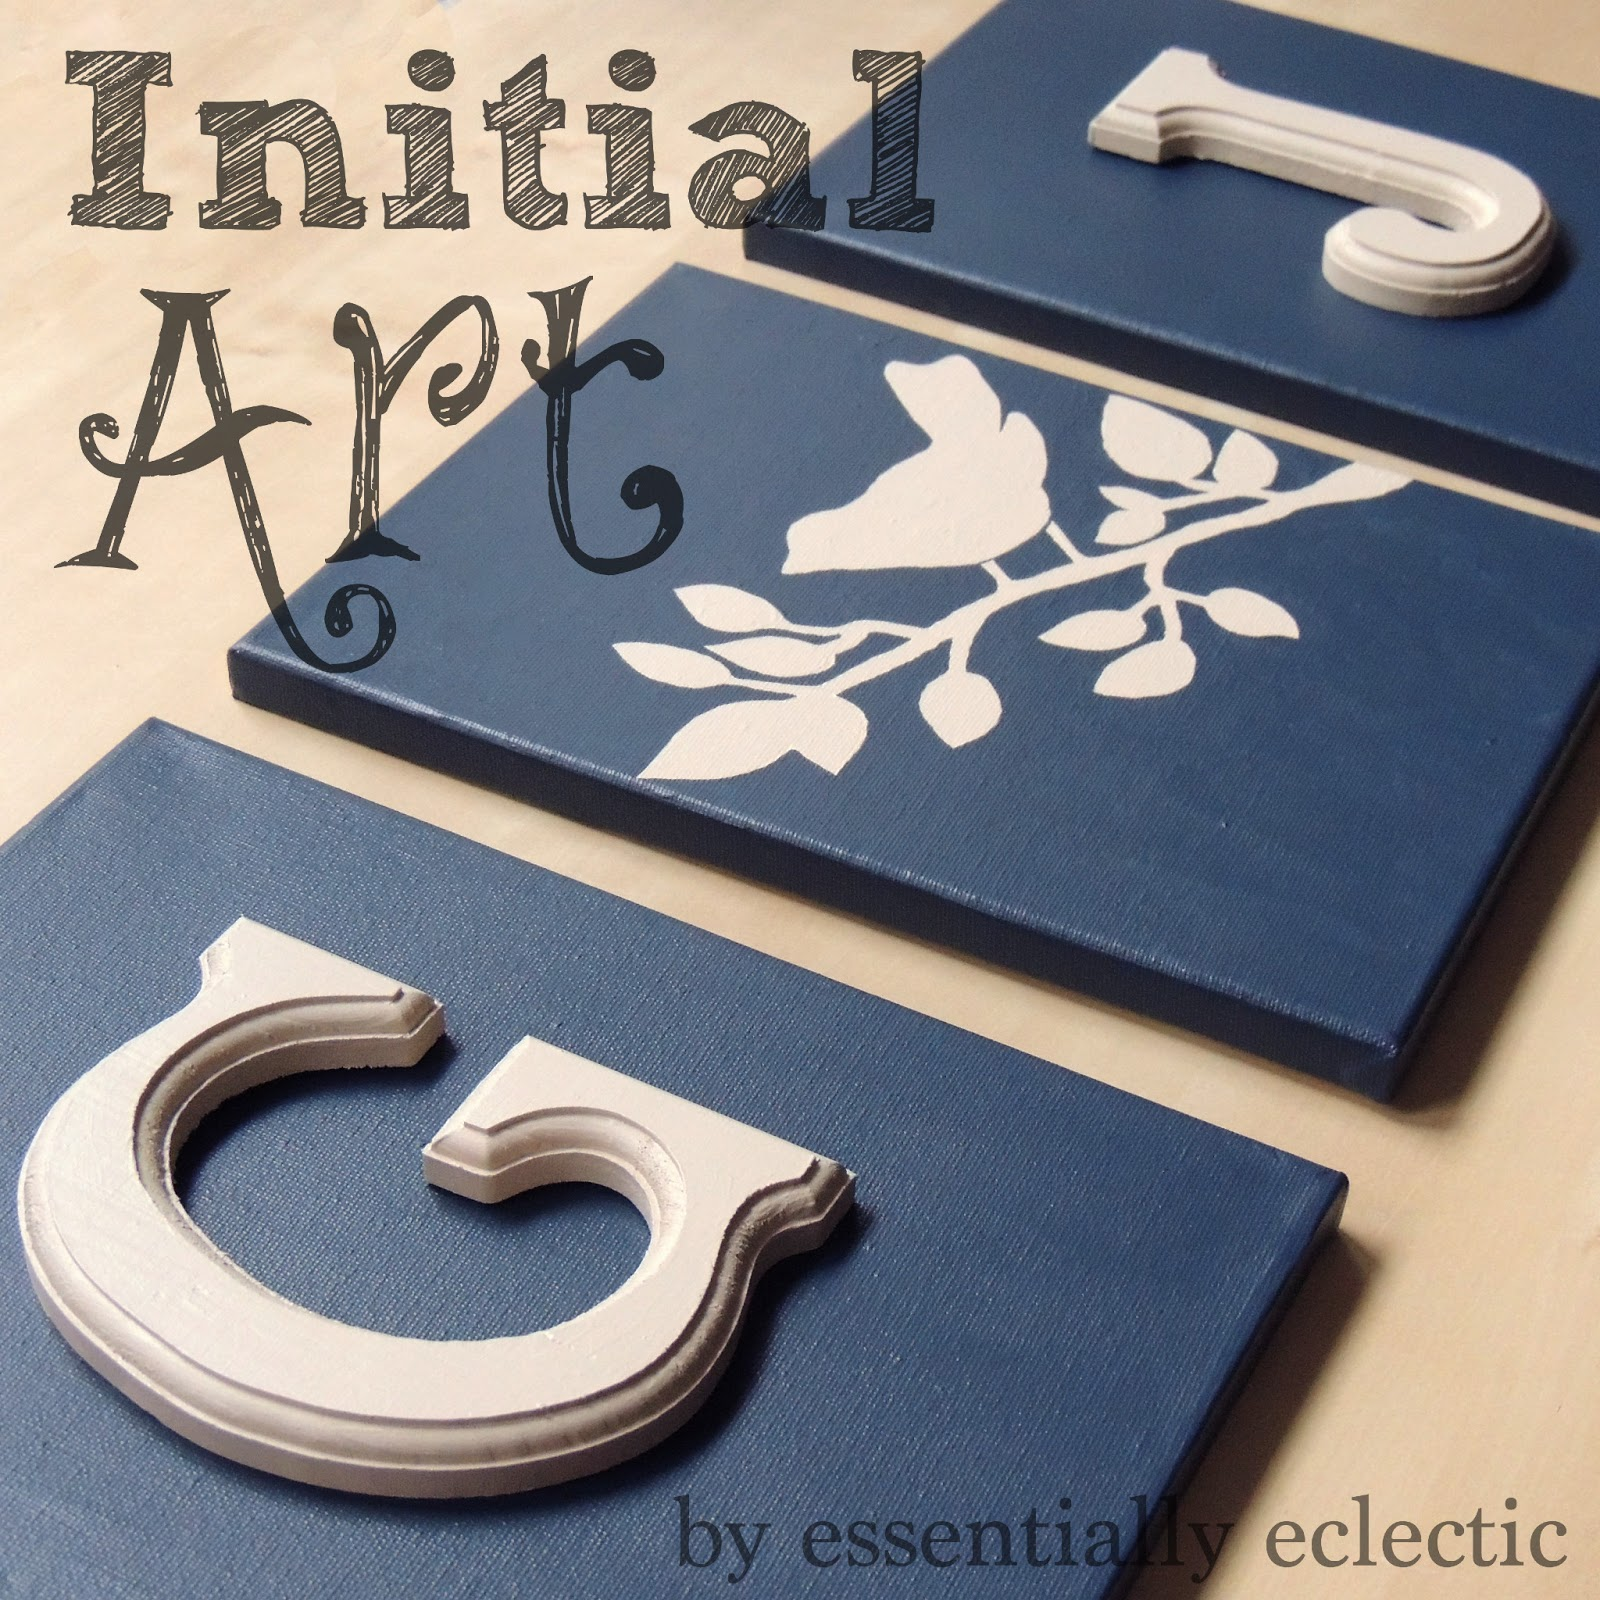 Diy initial wall art diy initial art essentiallyeclectic make your very own custom wall solutioingenieria Image collections